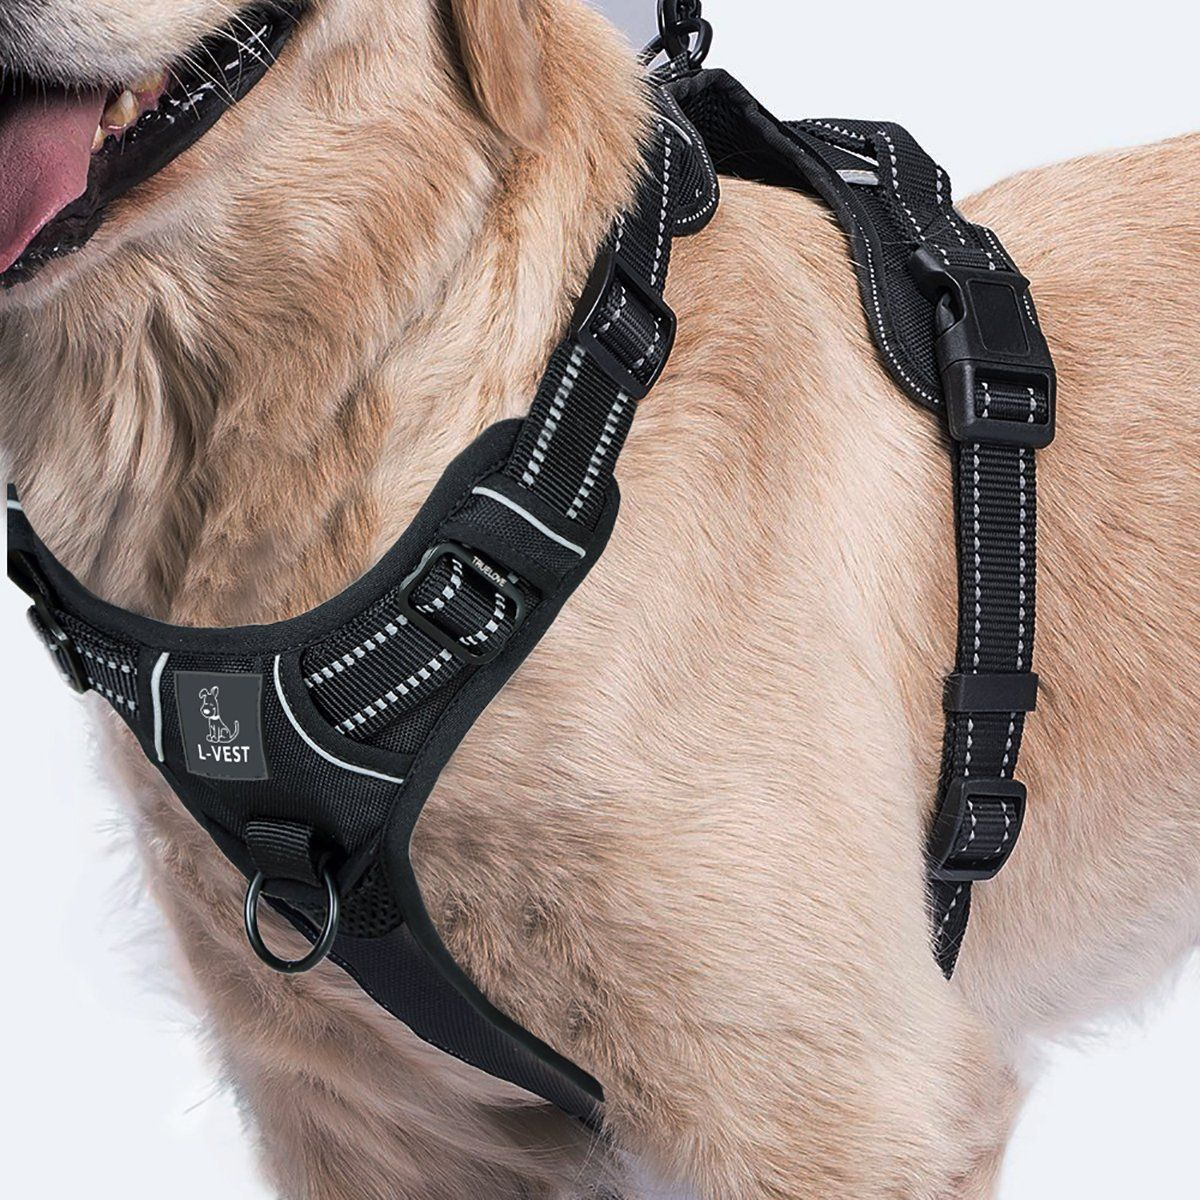 Dog Harness For Easy No Pull Walk Reflective Breathable Material